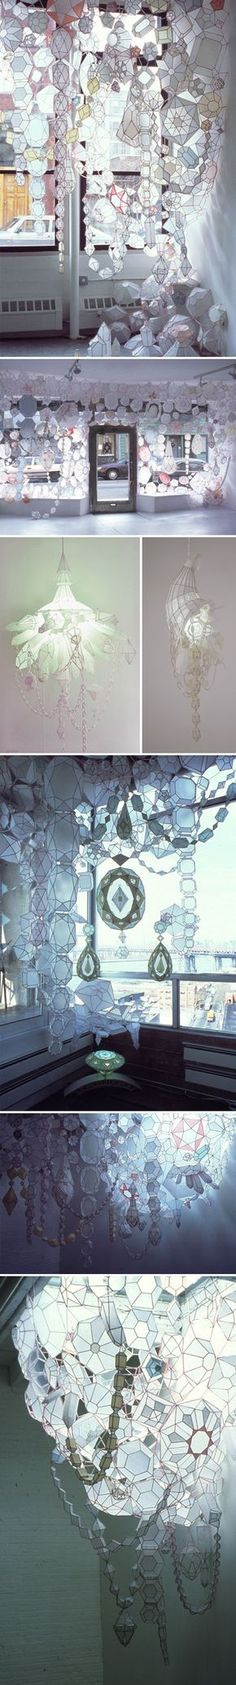 I so badly want American artist Kirsten Hassenfeld to hang one of these gorgeous installations from my ceiling! Delicate, light-infused, paper-based mixed media jewels… yes please.